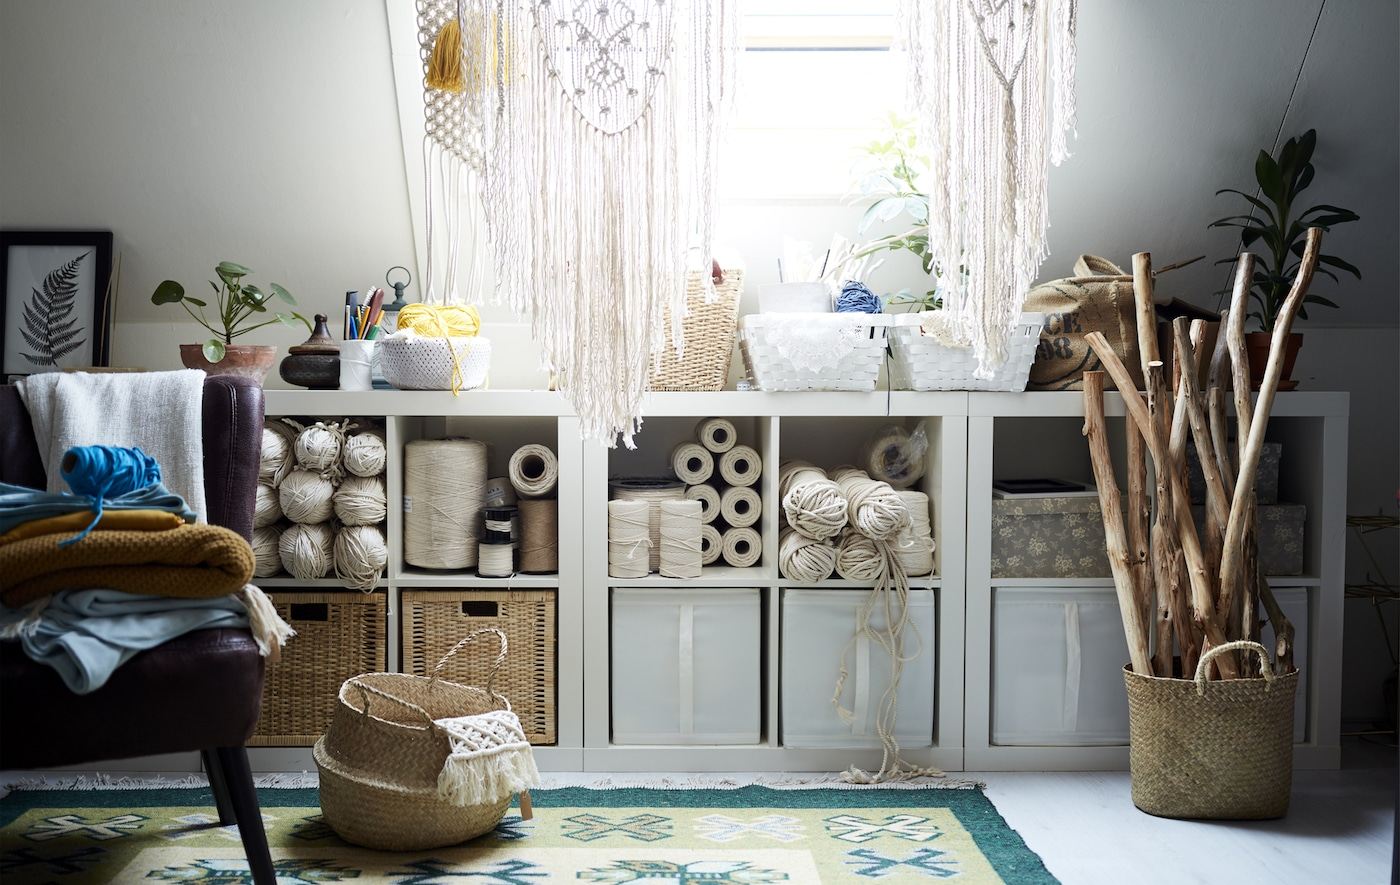 Open storage filled with boxes and creative hobby items, including threads, wooden sticks and hanging macramé items.